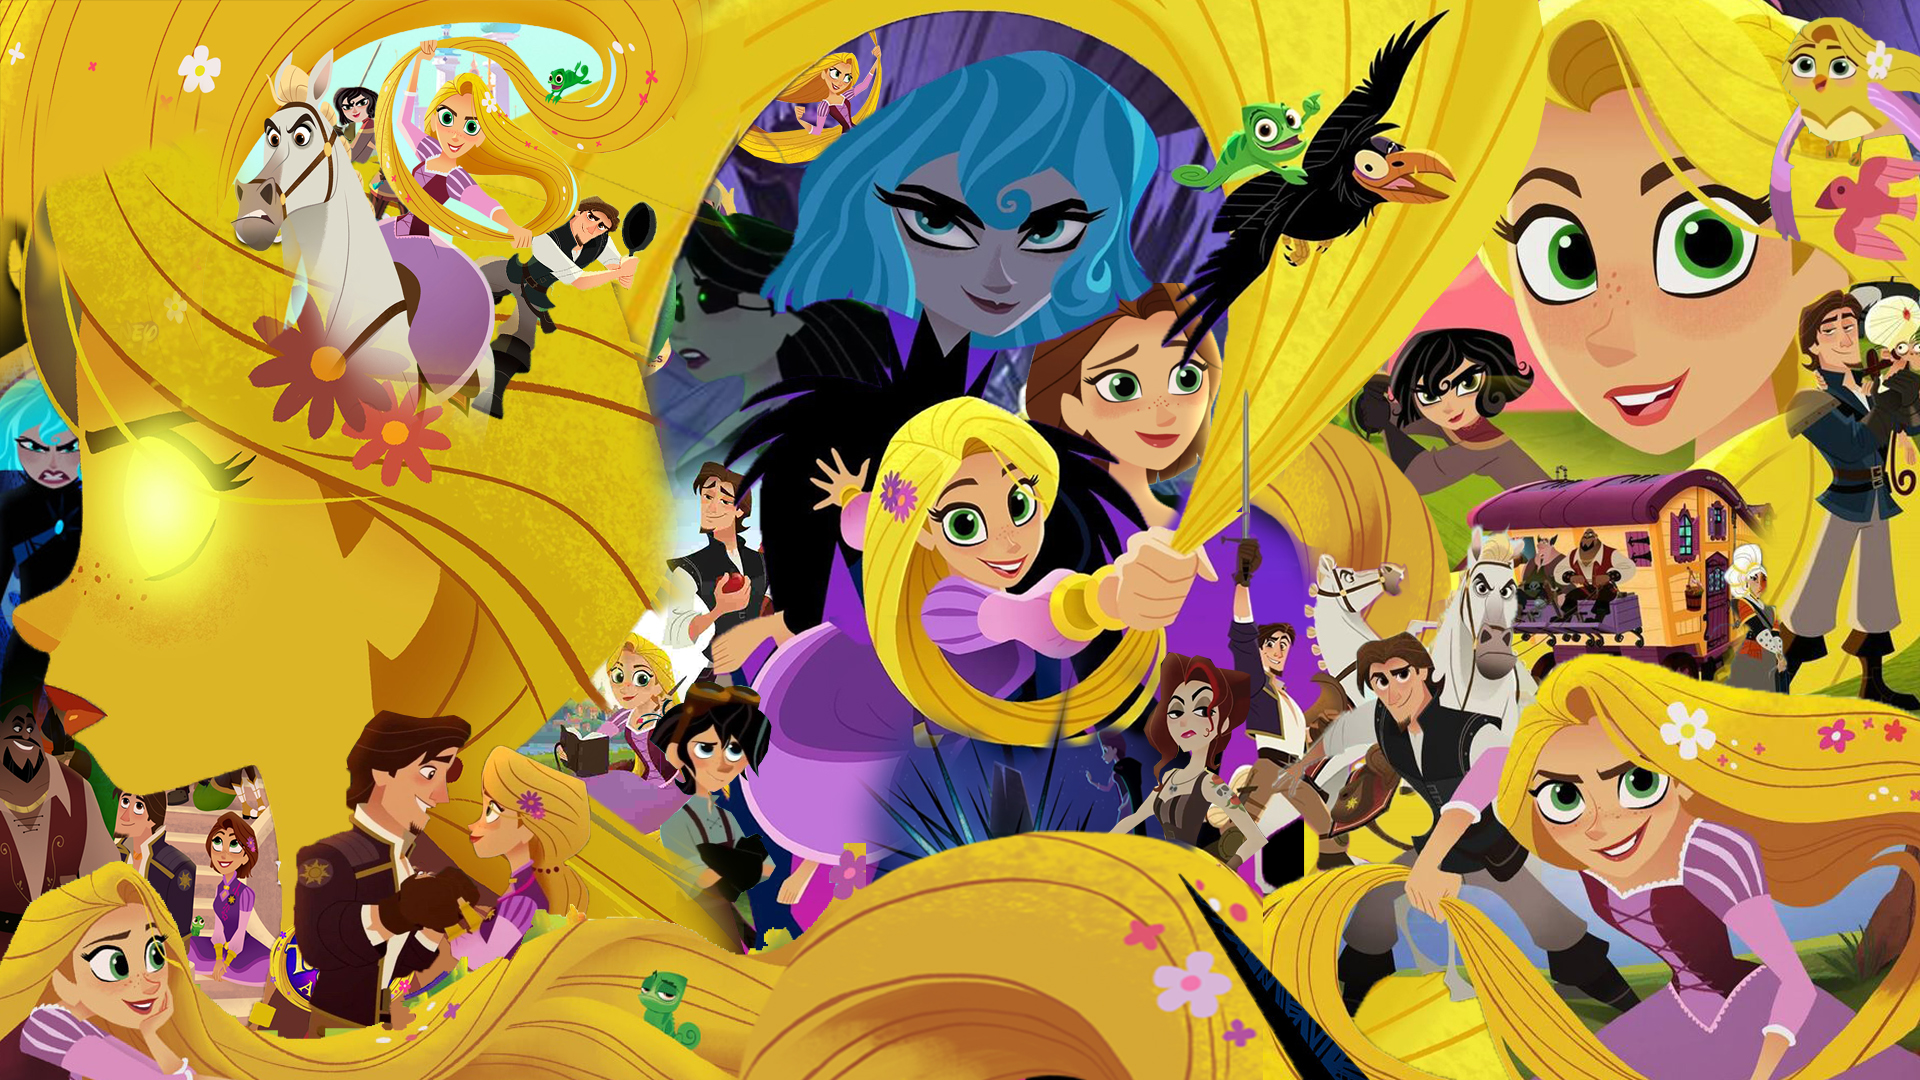 Tangled Series Wallpaper Hd Wallpaper Background Image 1920x1080 Id 1097066 Wallpaper Abyss